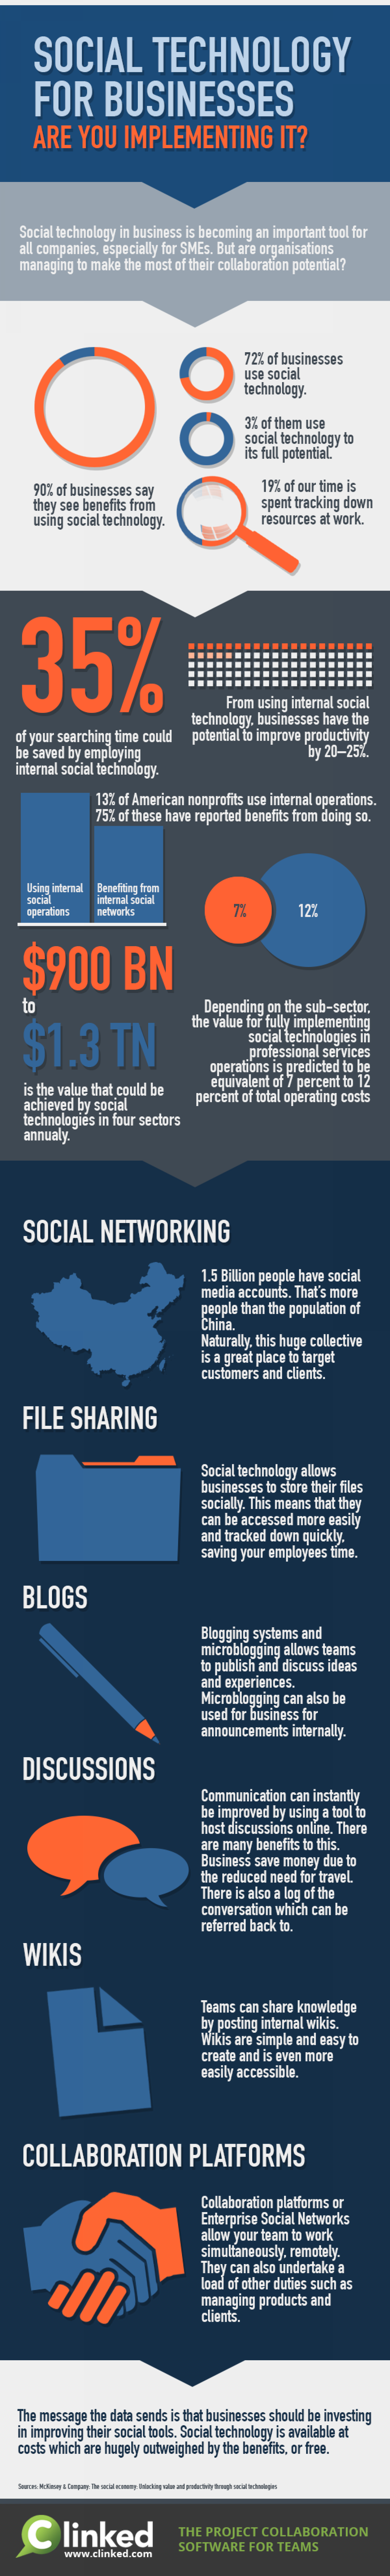 Are you one of the 3% of businesses making the most of social technology? Infographic